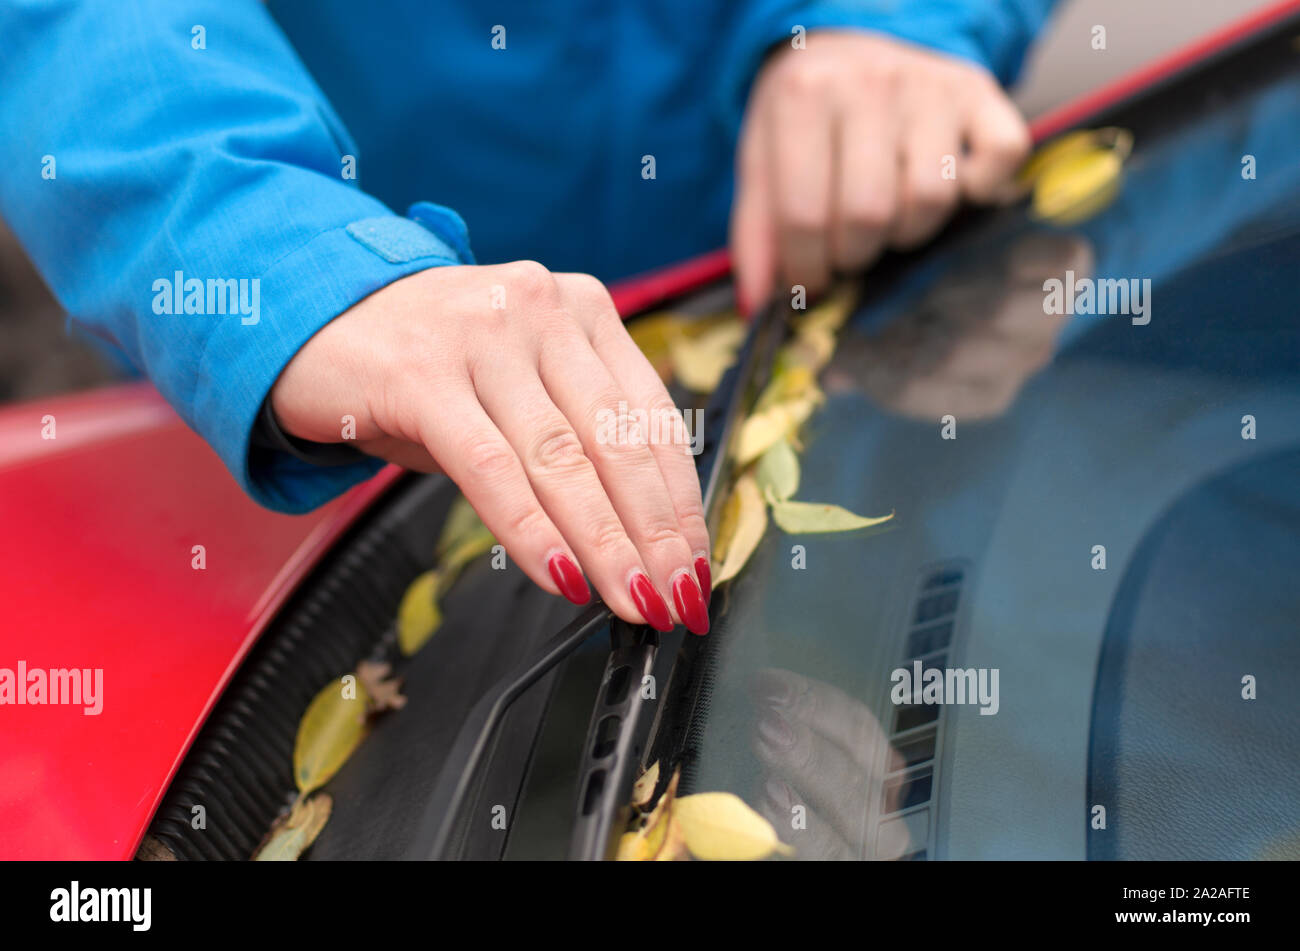 Hands of a young girl with red nails cleaned of fallen autumn leaves wiper blades and car windshield Stock Photo